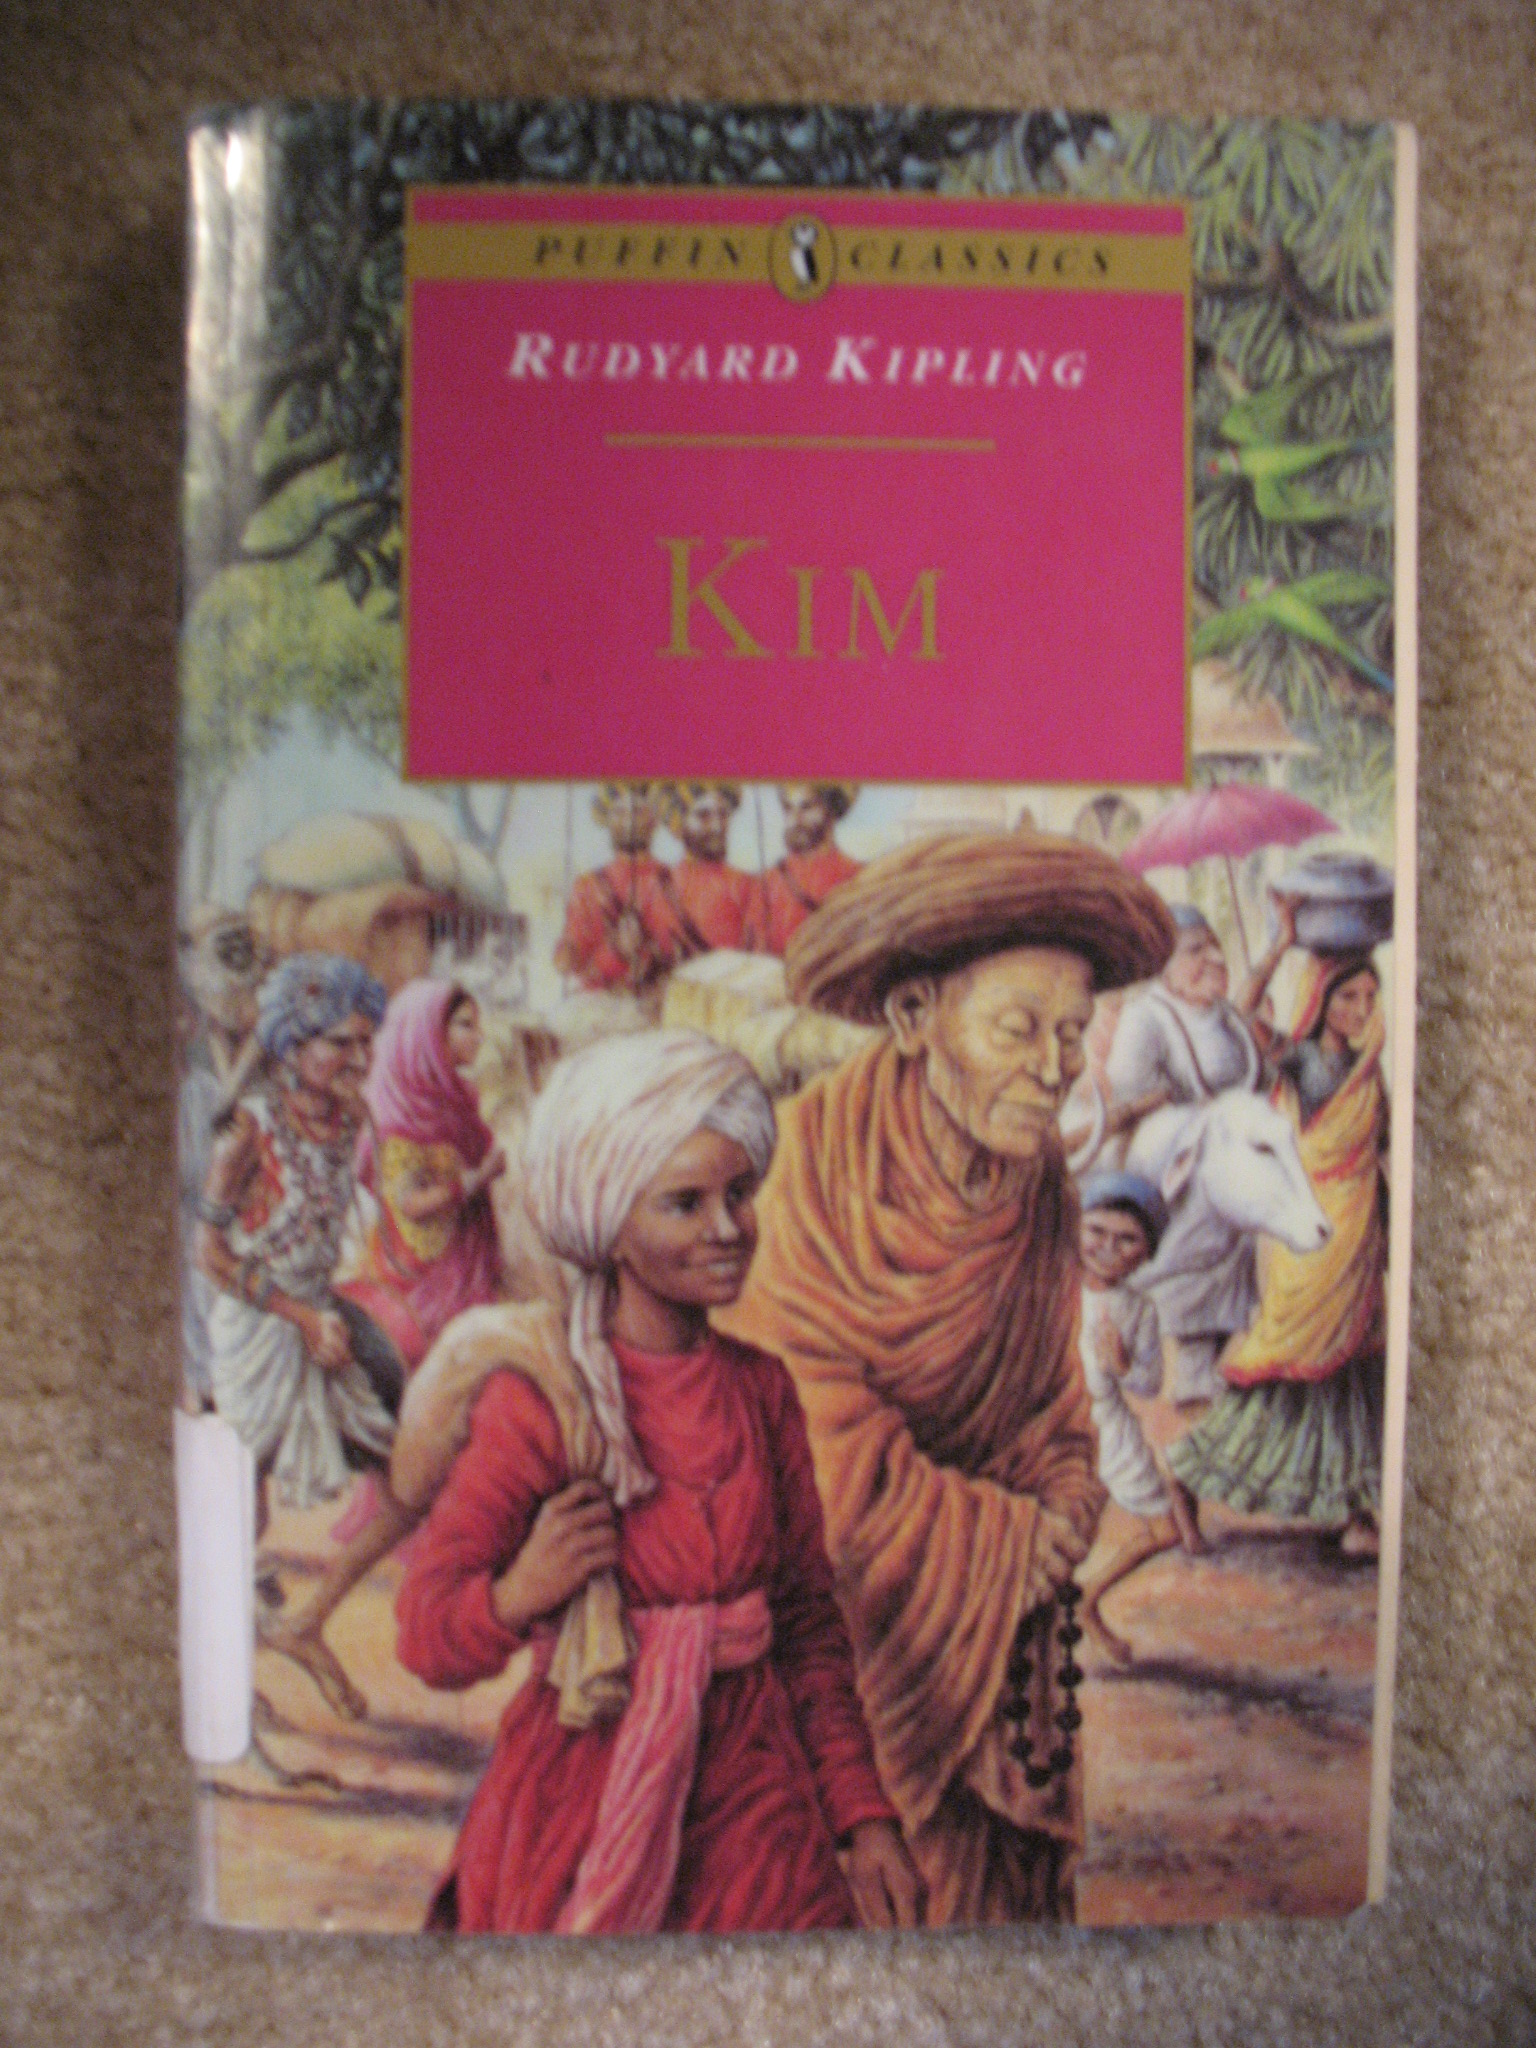 essays on kim by rudyard kipling george orwell rudyard kipling rudyard kipling it was a pity that mr eliot should be so much on the defensive in the long essay